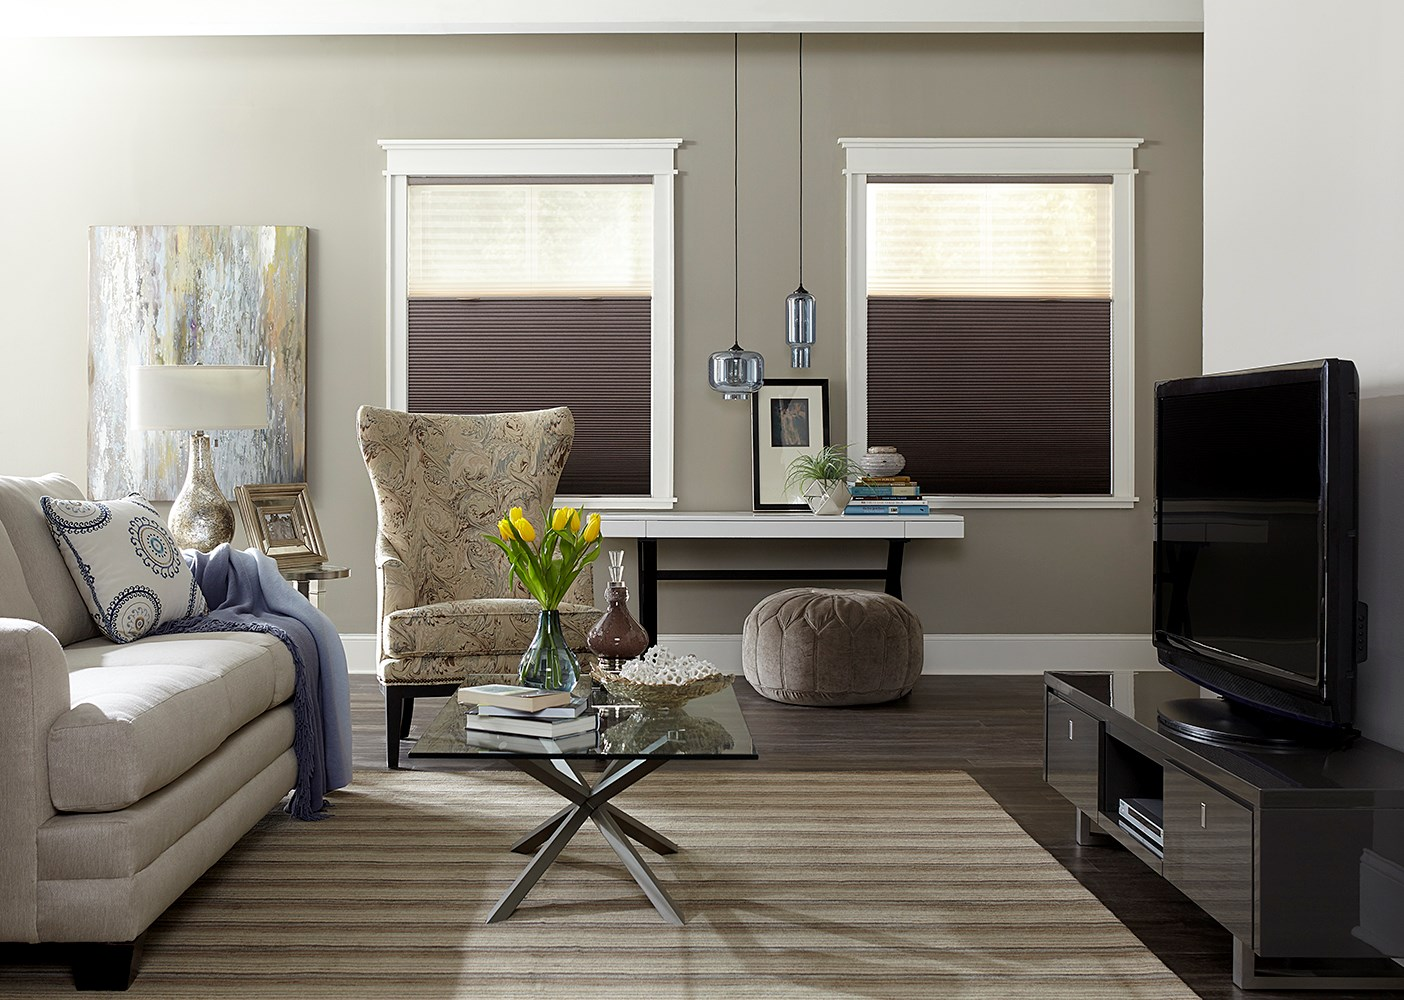 518199_SignatureBOCellShades_SugarplumandBeige_CrdlssTrilight_HalfDown (MB Blinds).jpg